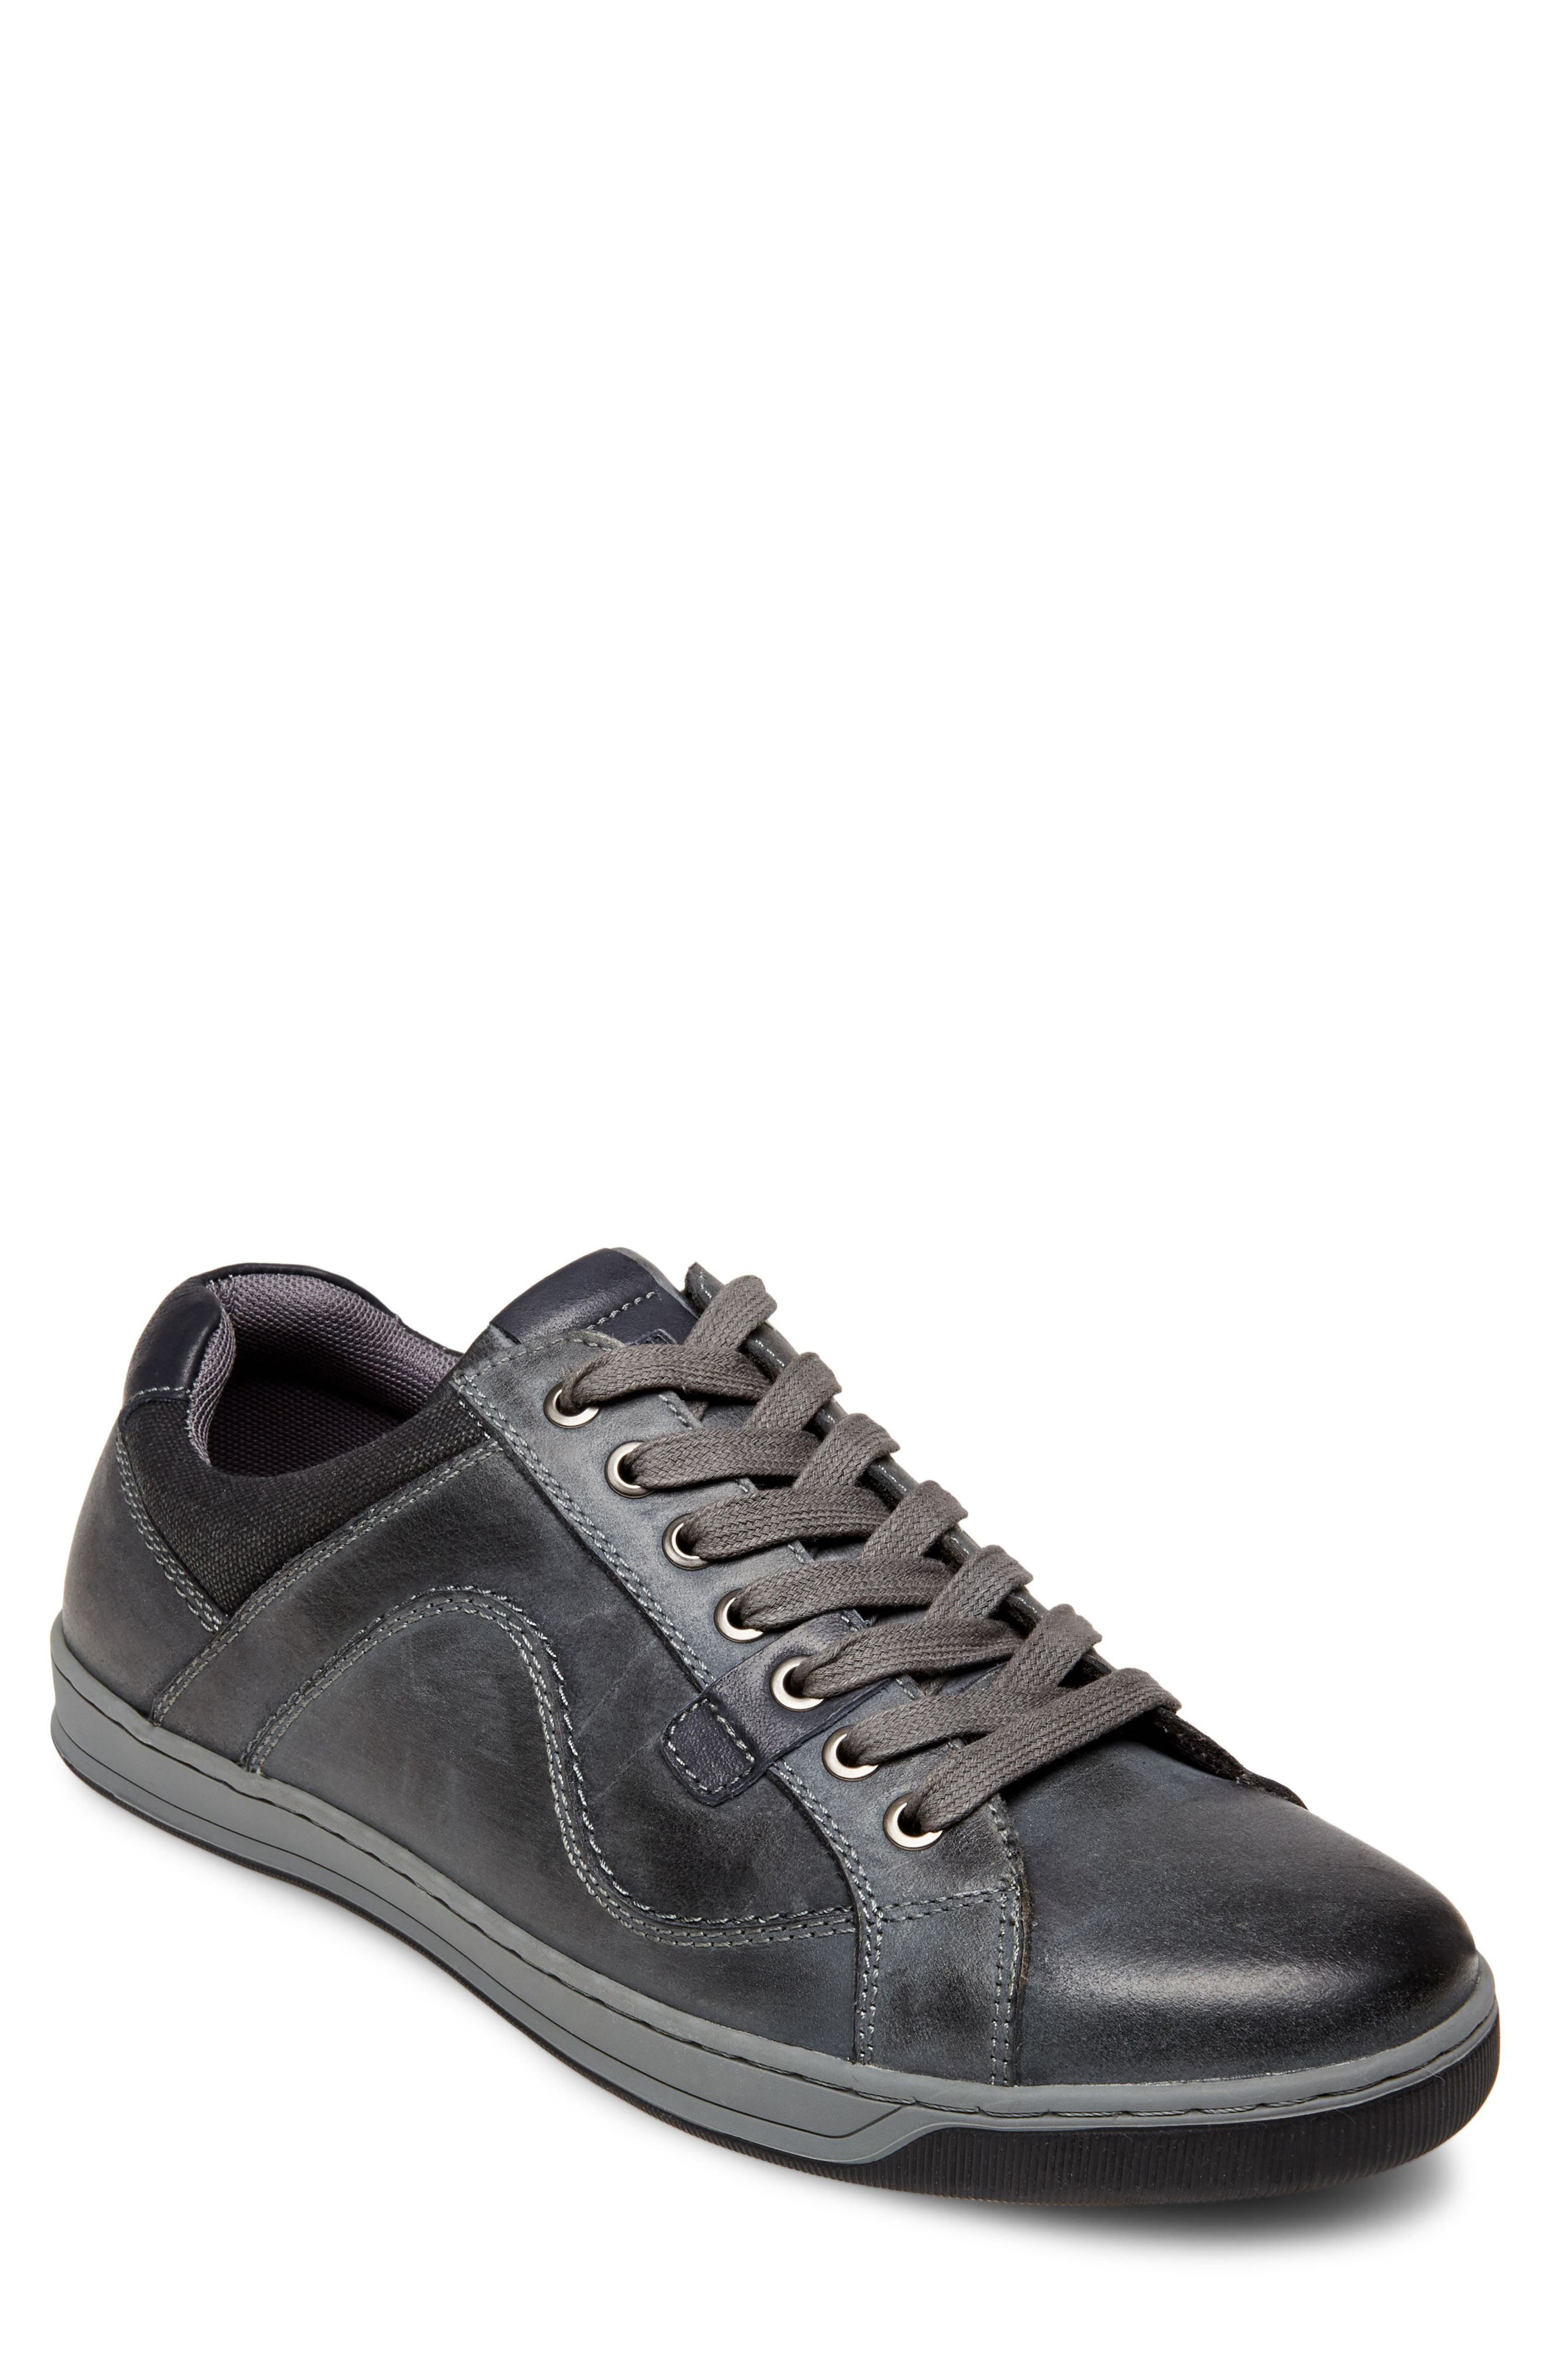 Chater Low Top Sneaker,                             Main thumbnail 1, color,